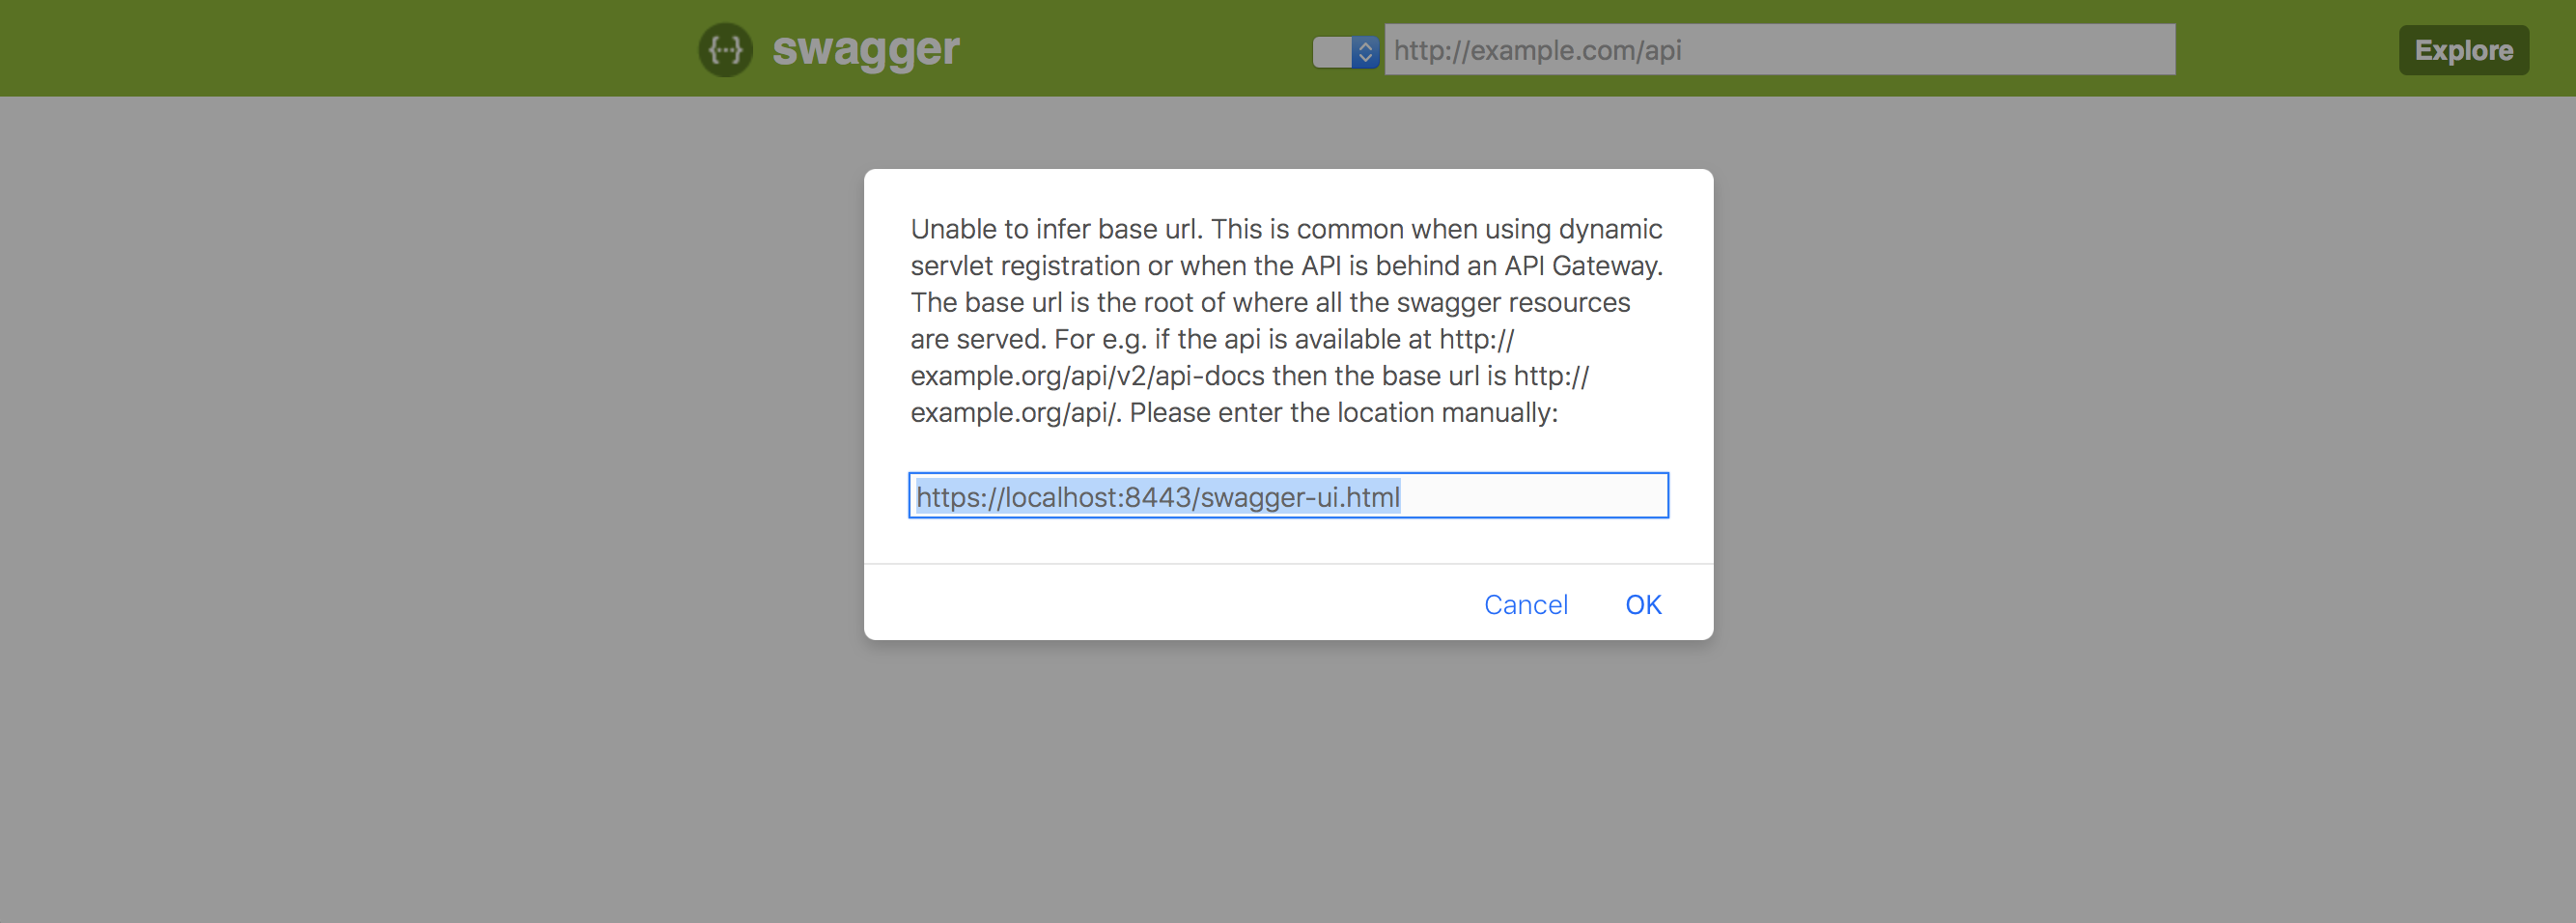 Swagger ui stuck on unable to infer base url · Issue #1996